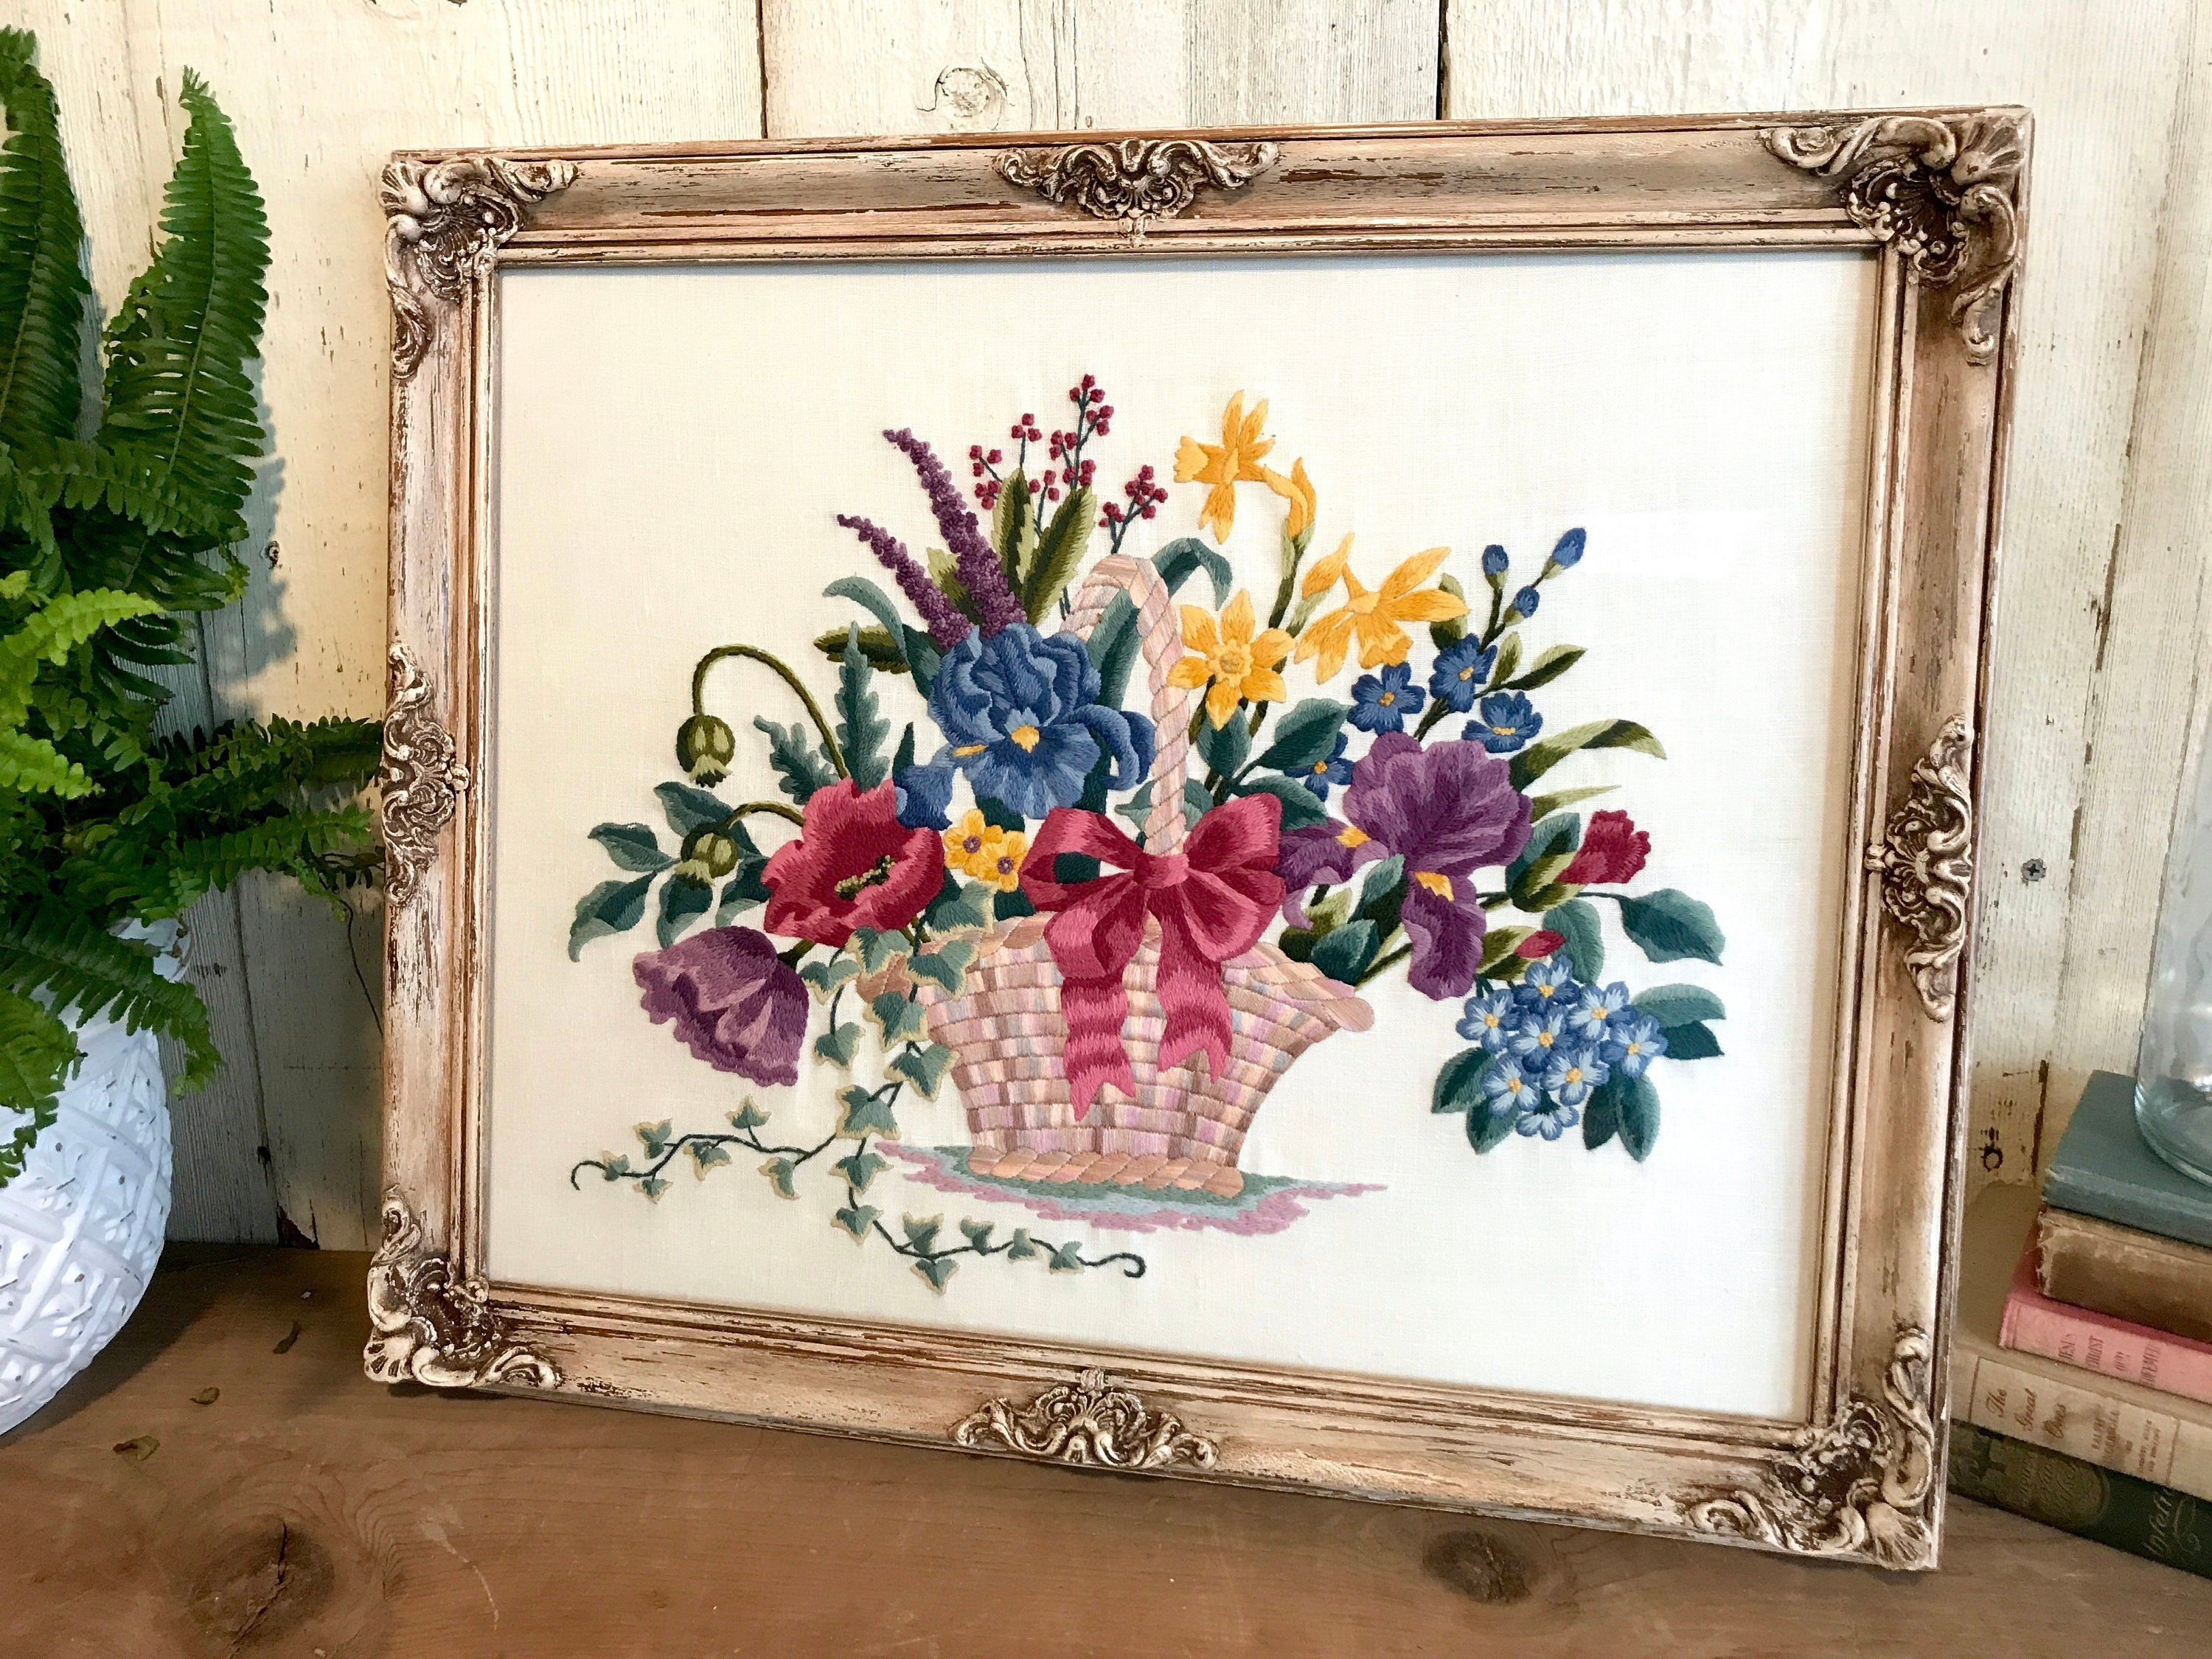 Framed Floral Embroidery Artwork Embroidered Basket 0f Flowers Vintage Ornate Wall Frame Framed Flow Shabby Chic Wall Decor Frames On Wall Floral Embroidery